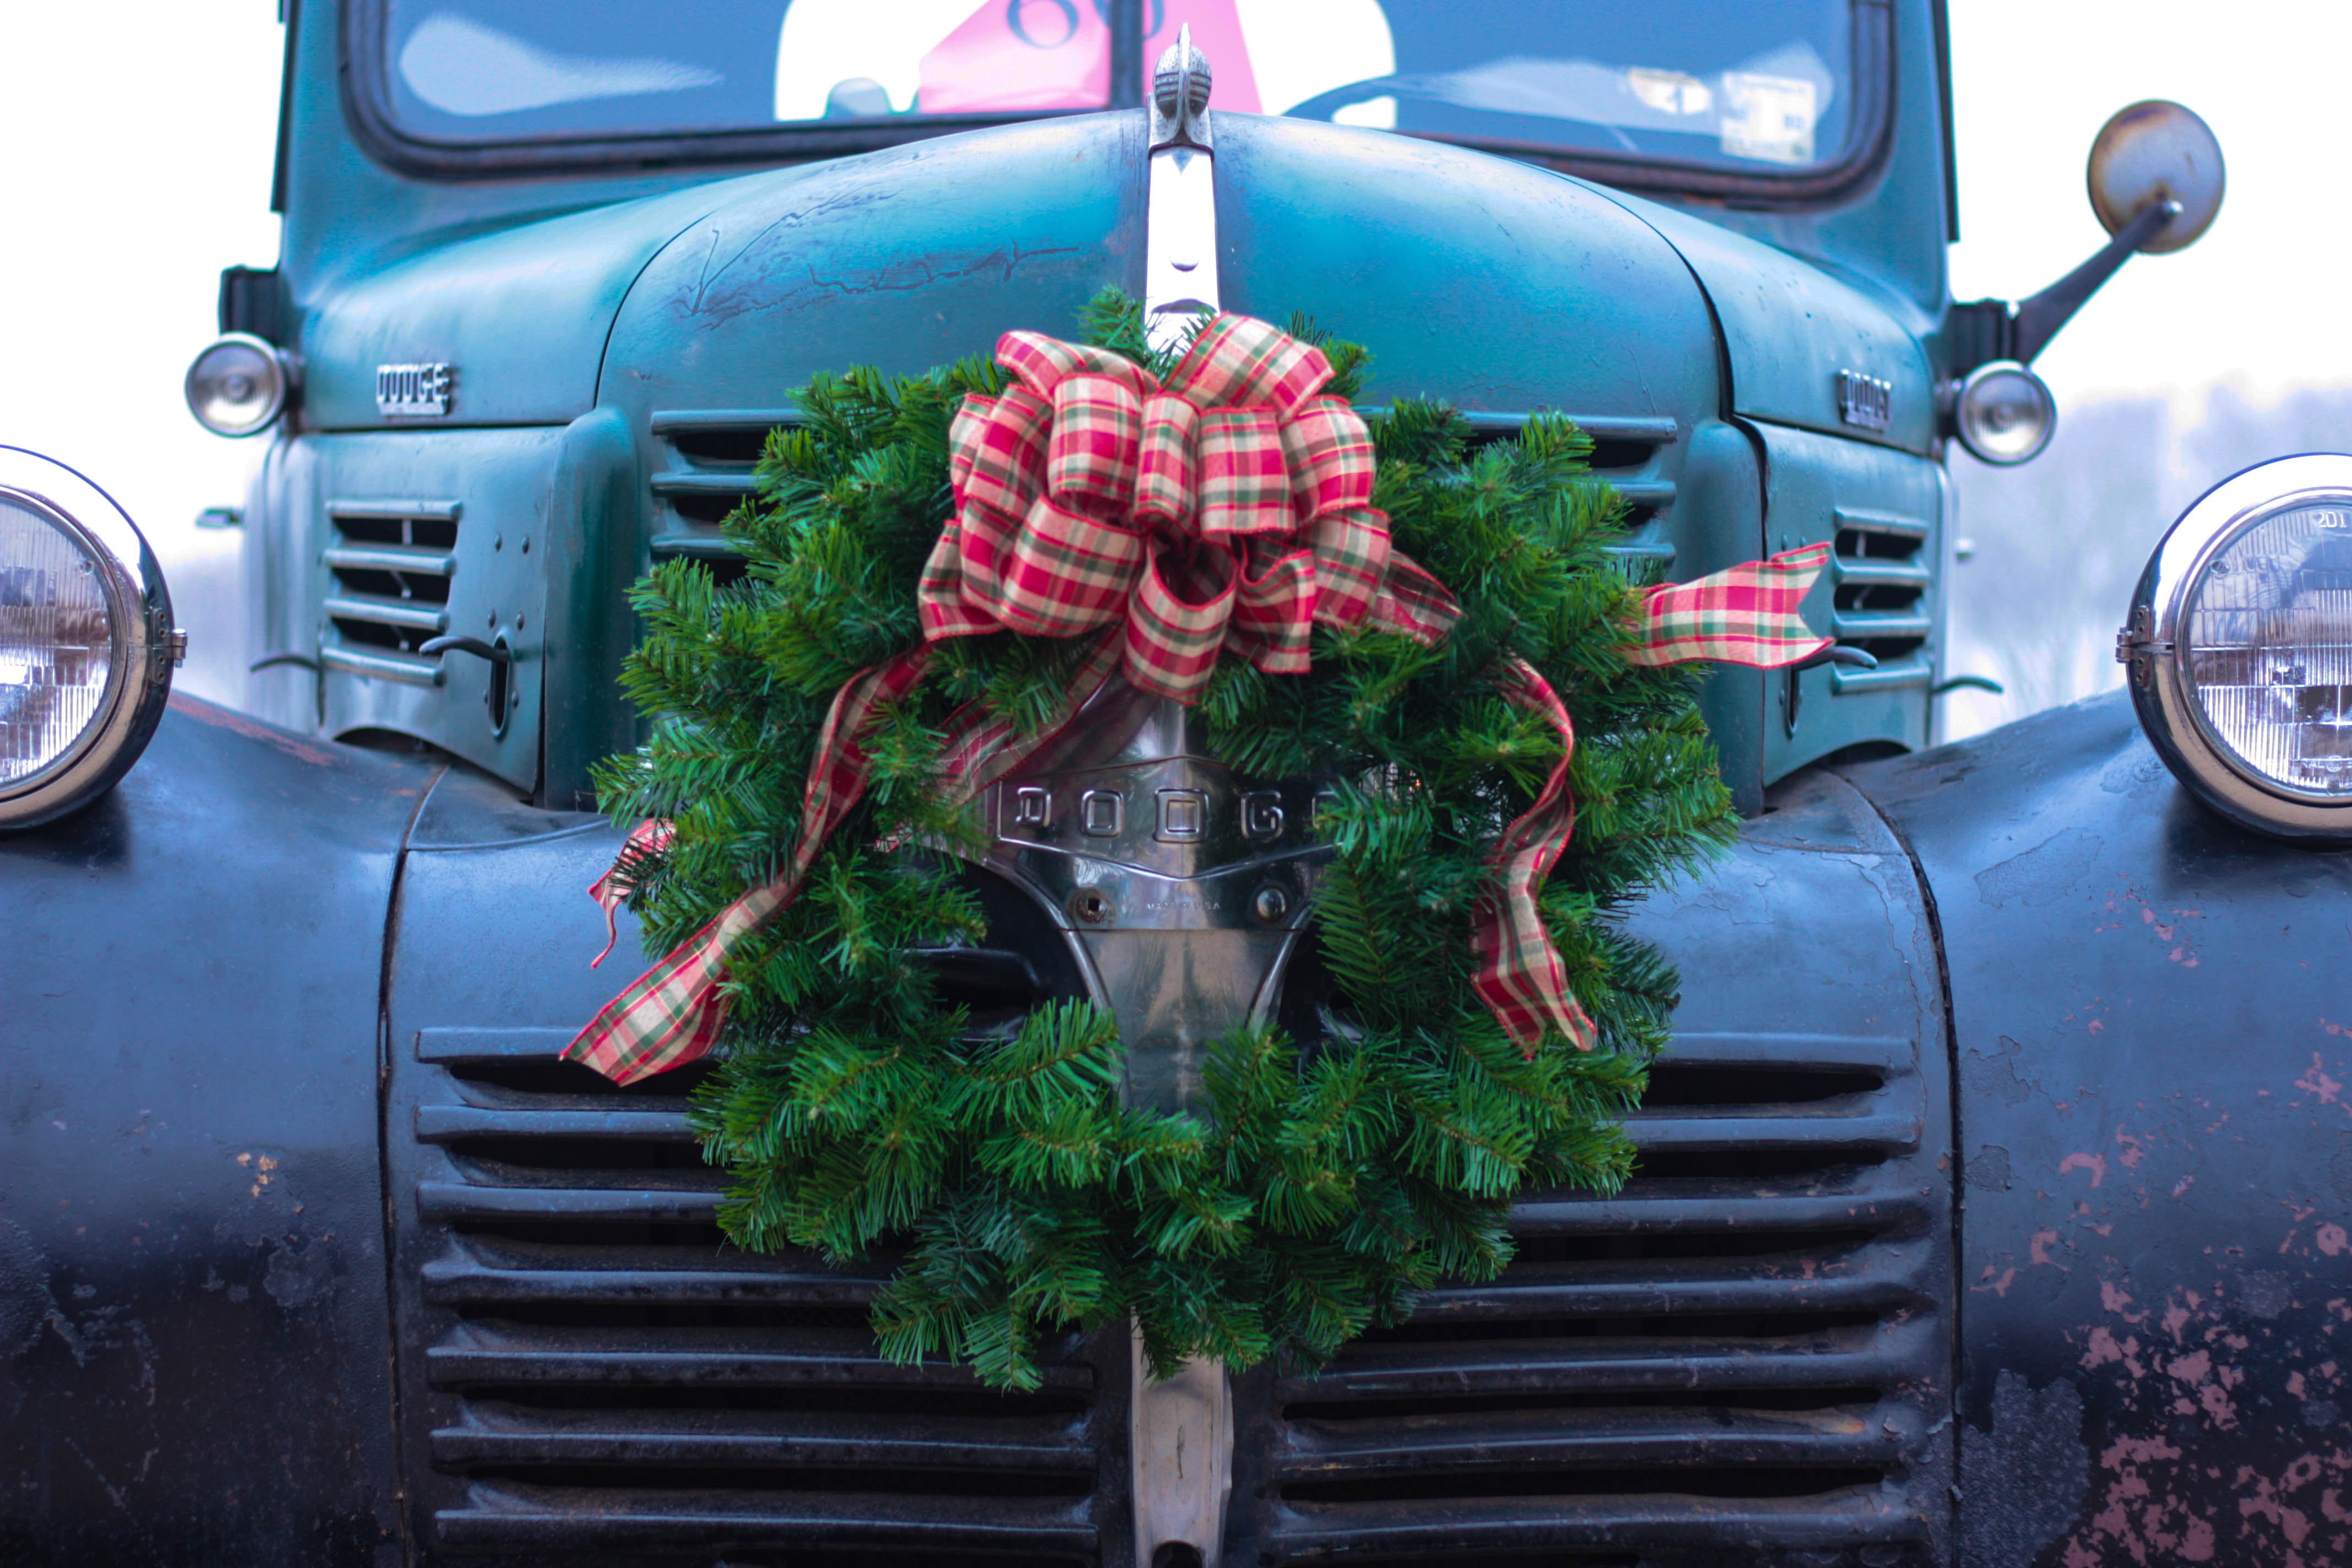 green wreath on bumper of blue truck